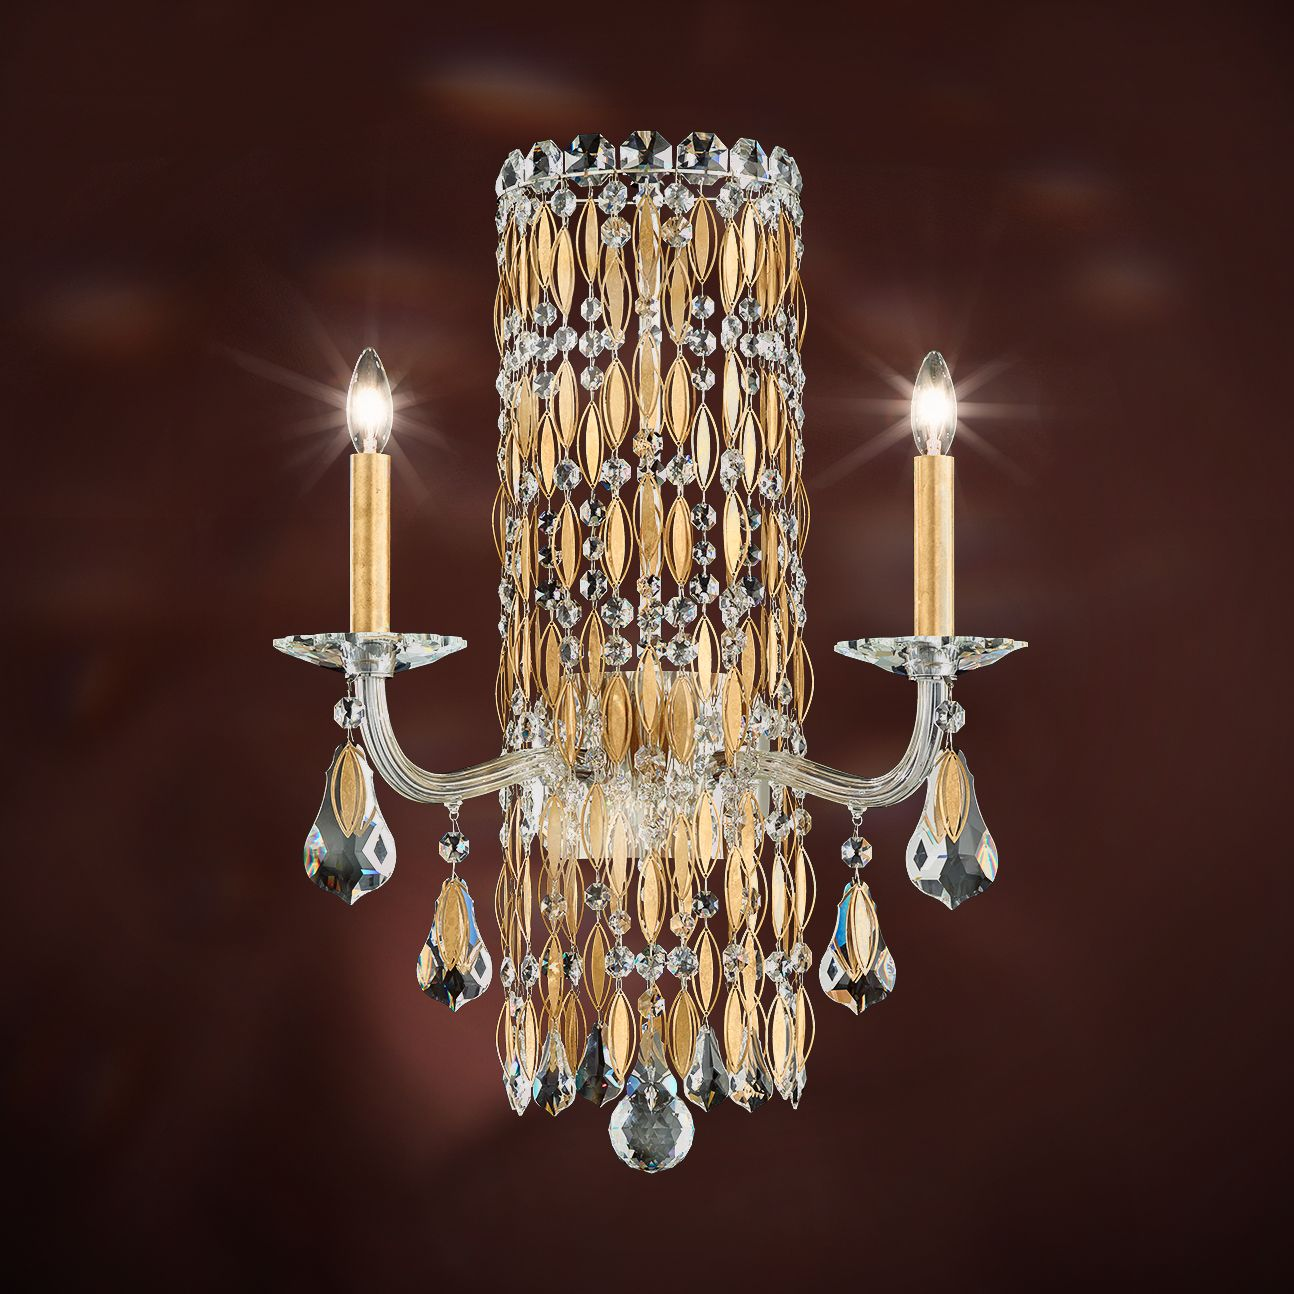 Available in heritage an spectra and swarovski crystal schonbek available in heritage an spectra and swarovski crystal arubaitofo Gallery